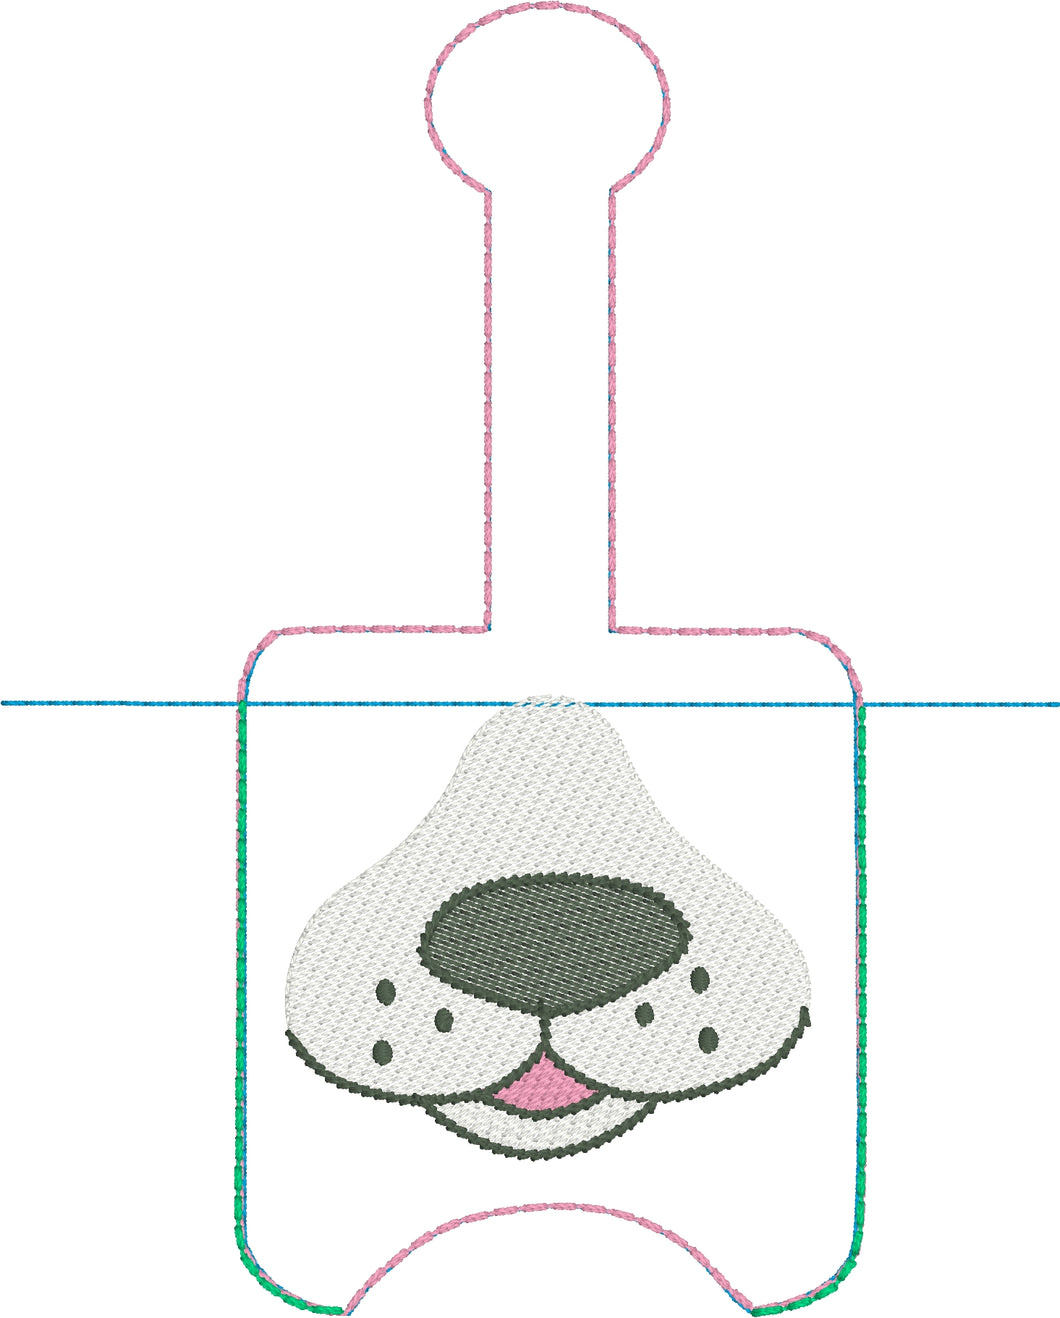 Dog Face Hand Sanitizer Holder Snap Tab Version In the Hoop Embroidery Project 2 oz for 5x7 hoops